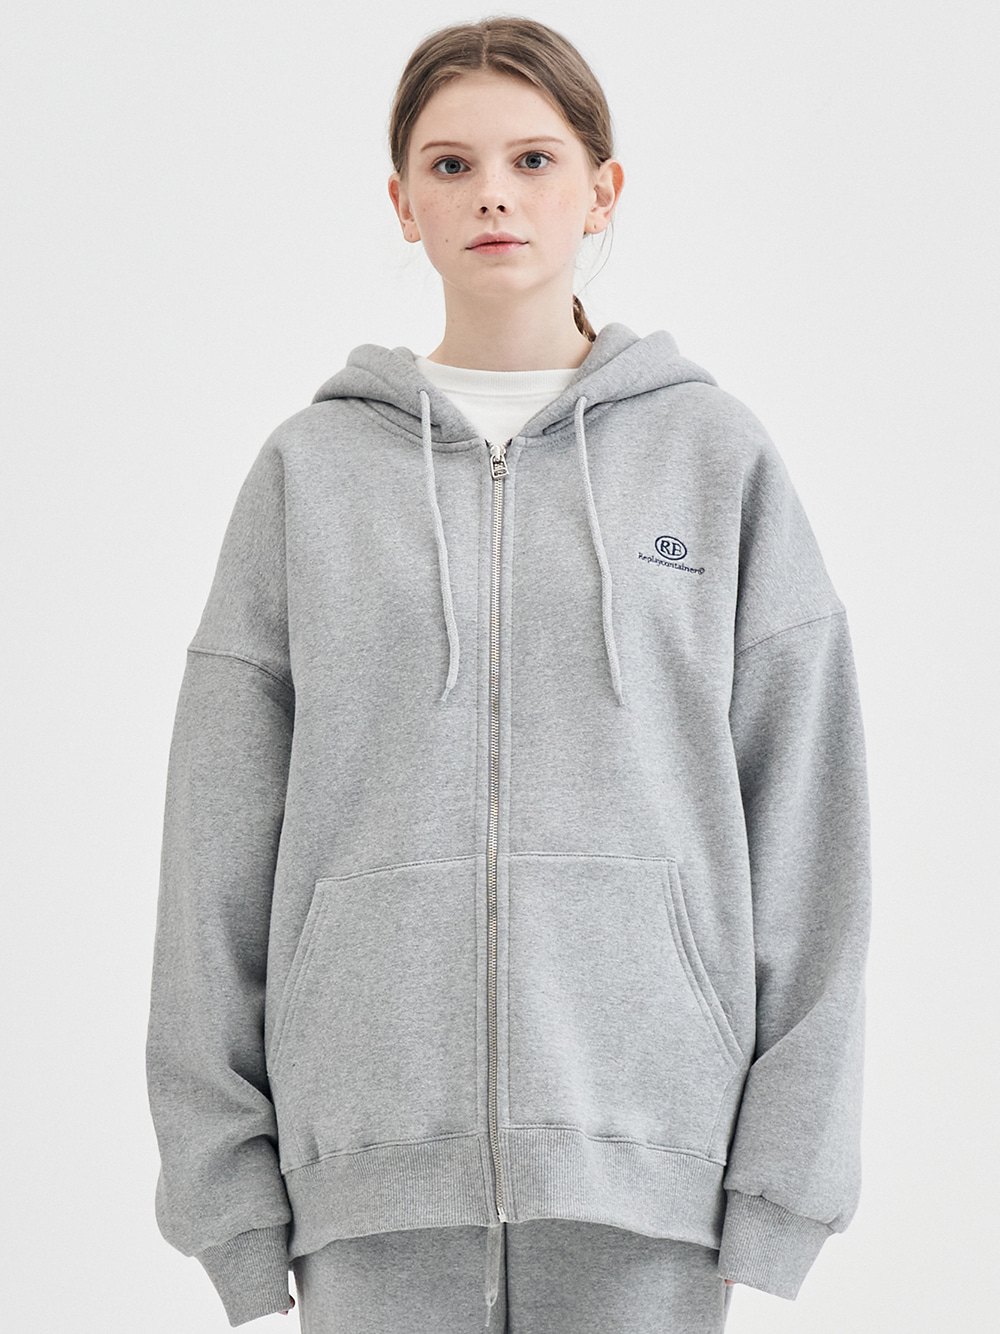 RE capsule logo zip-up hoody (gray)